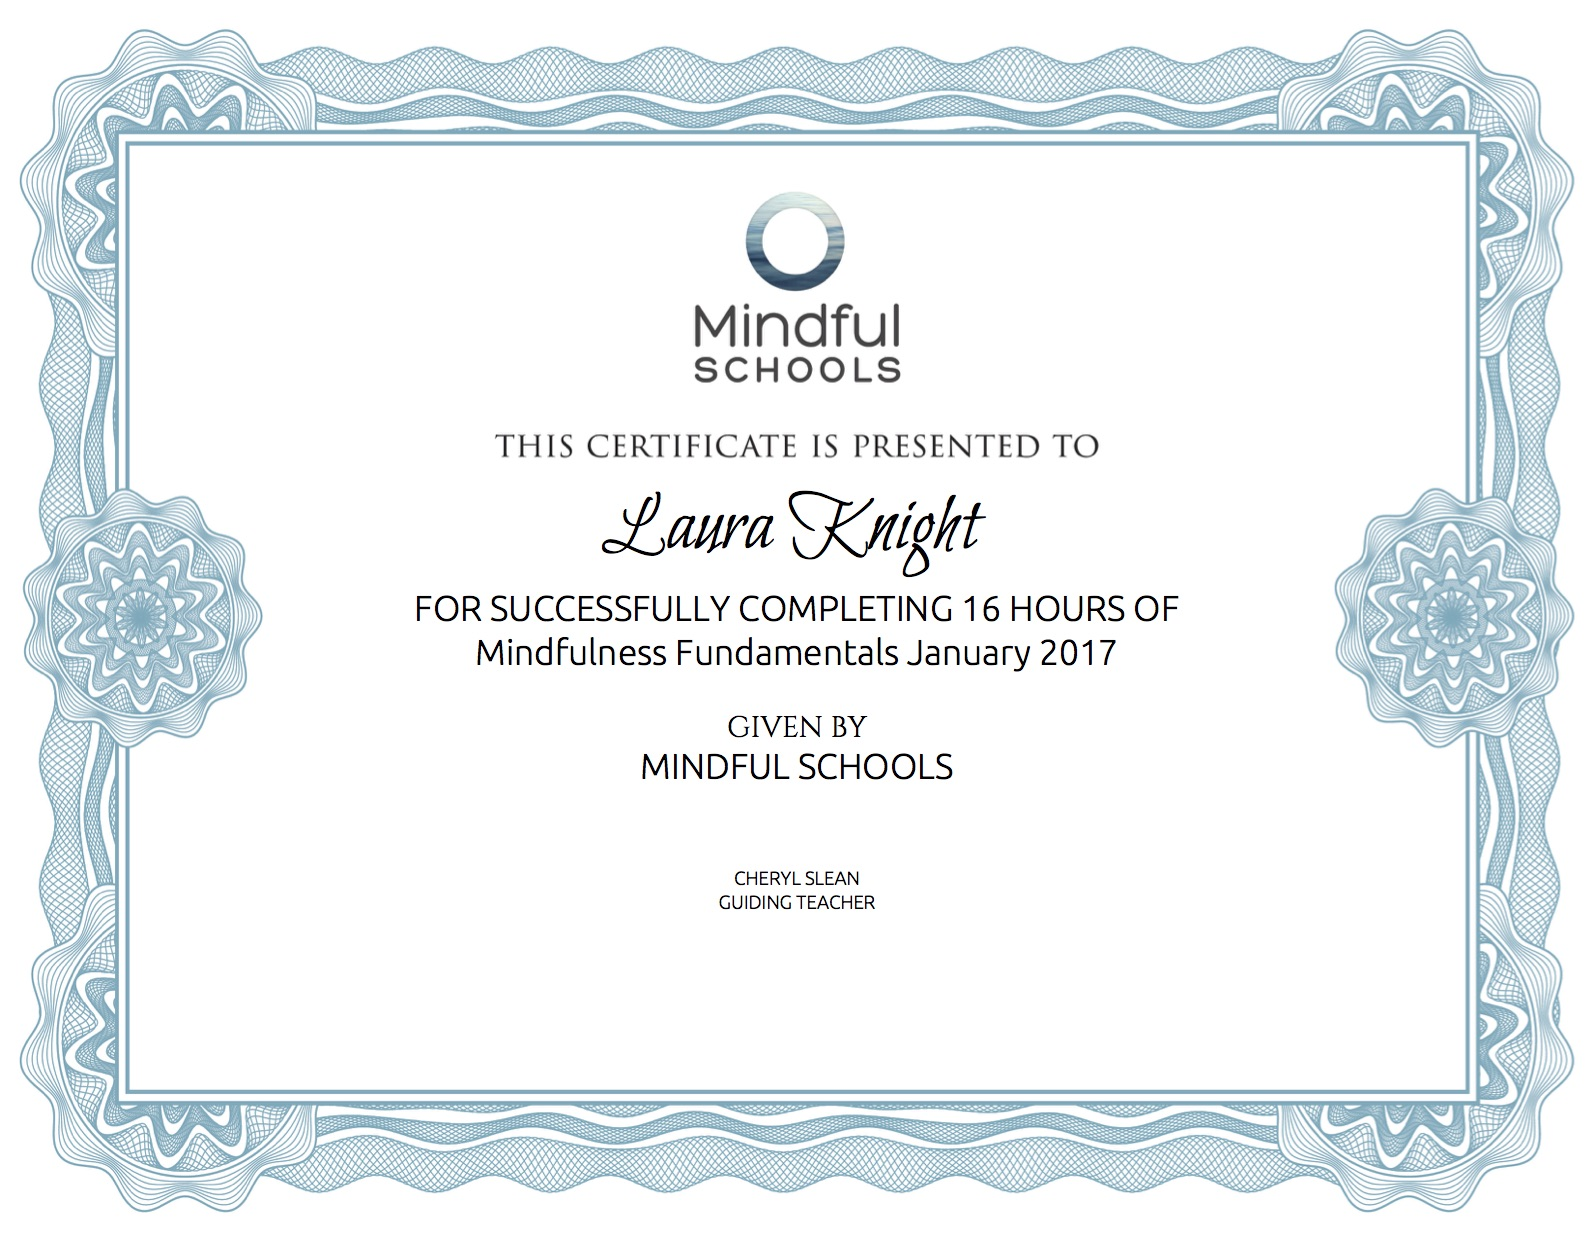 Mindfulness_Fundamentals_January_2017_4-Certificate_of_Completion_9262.jpg